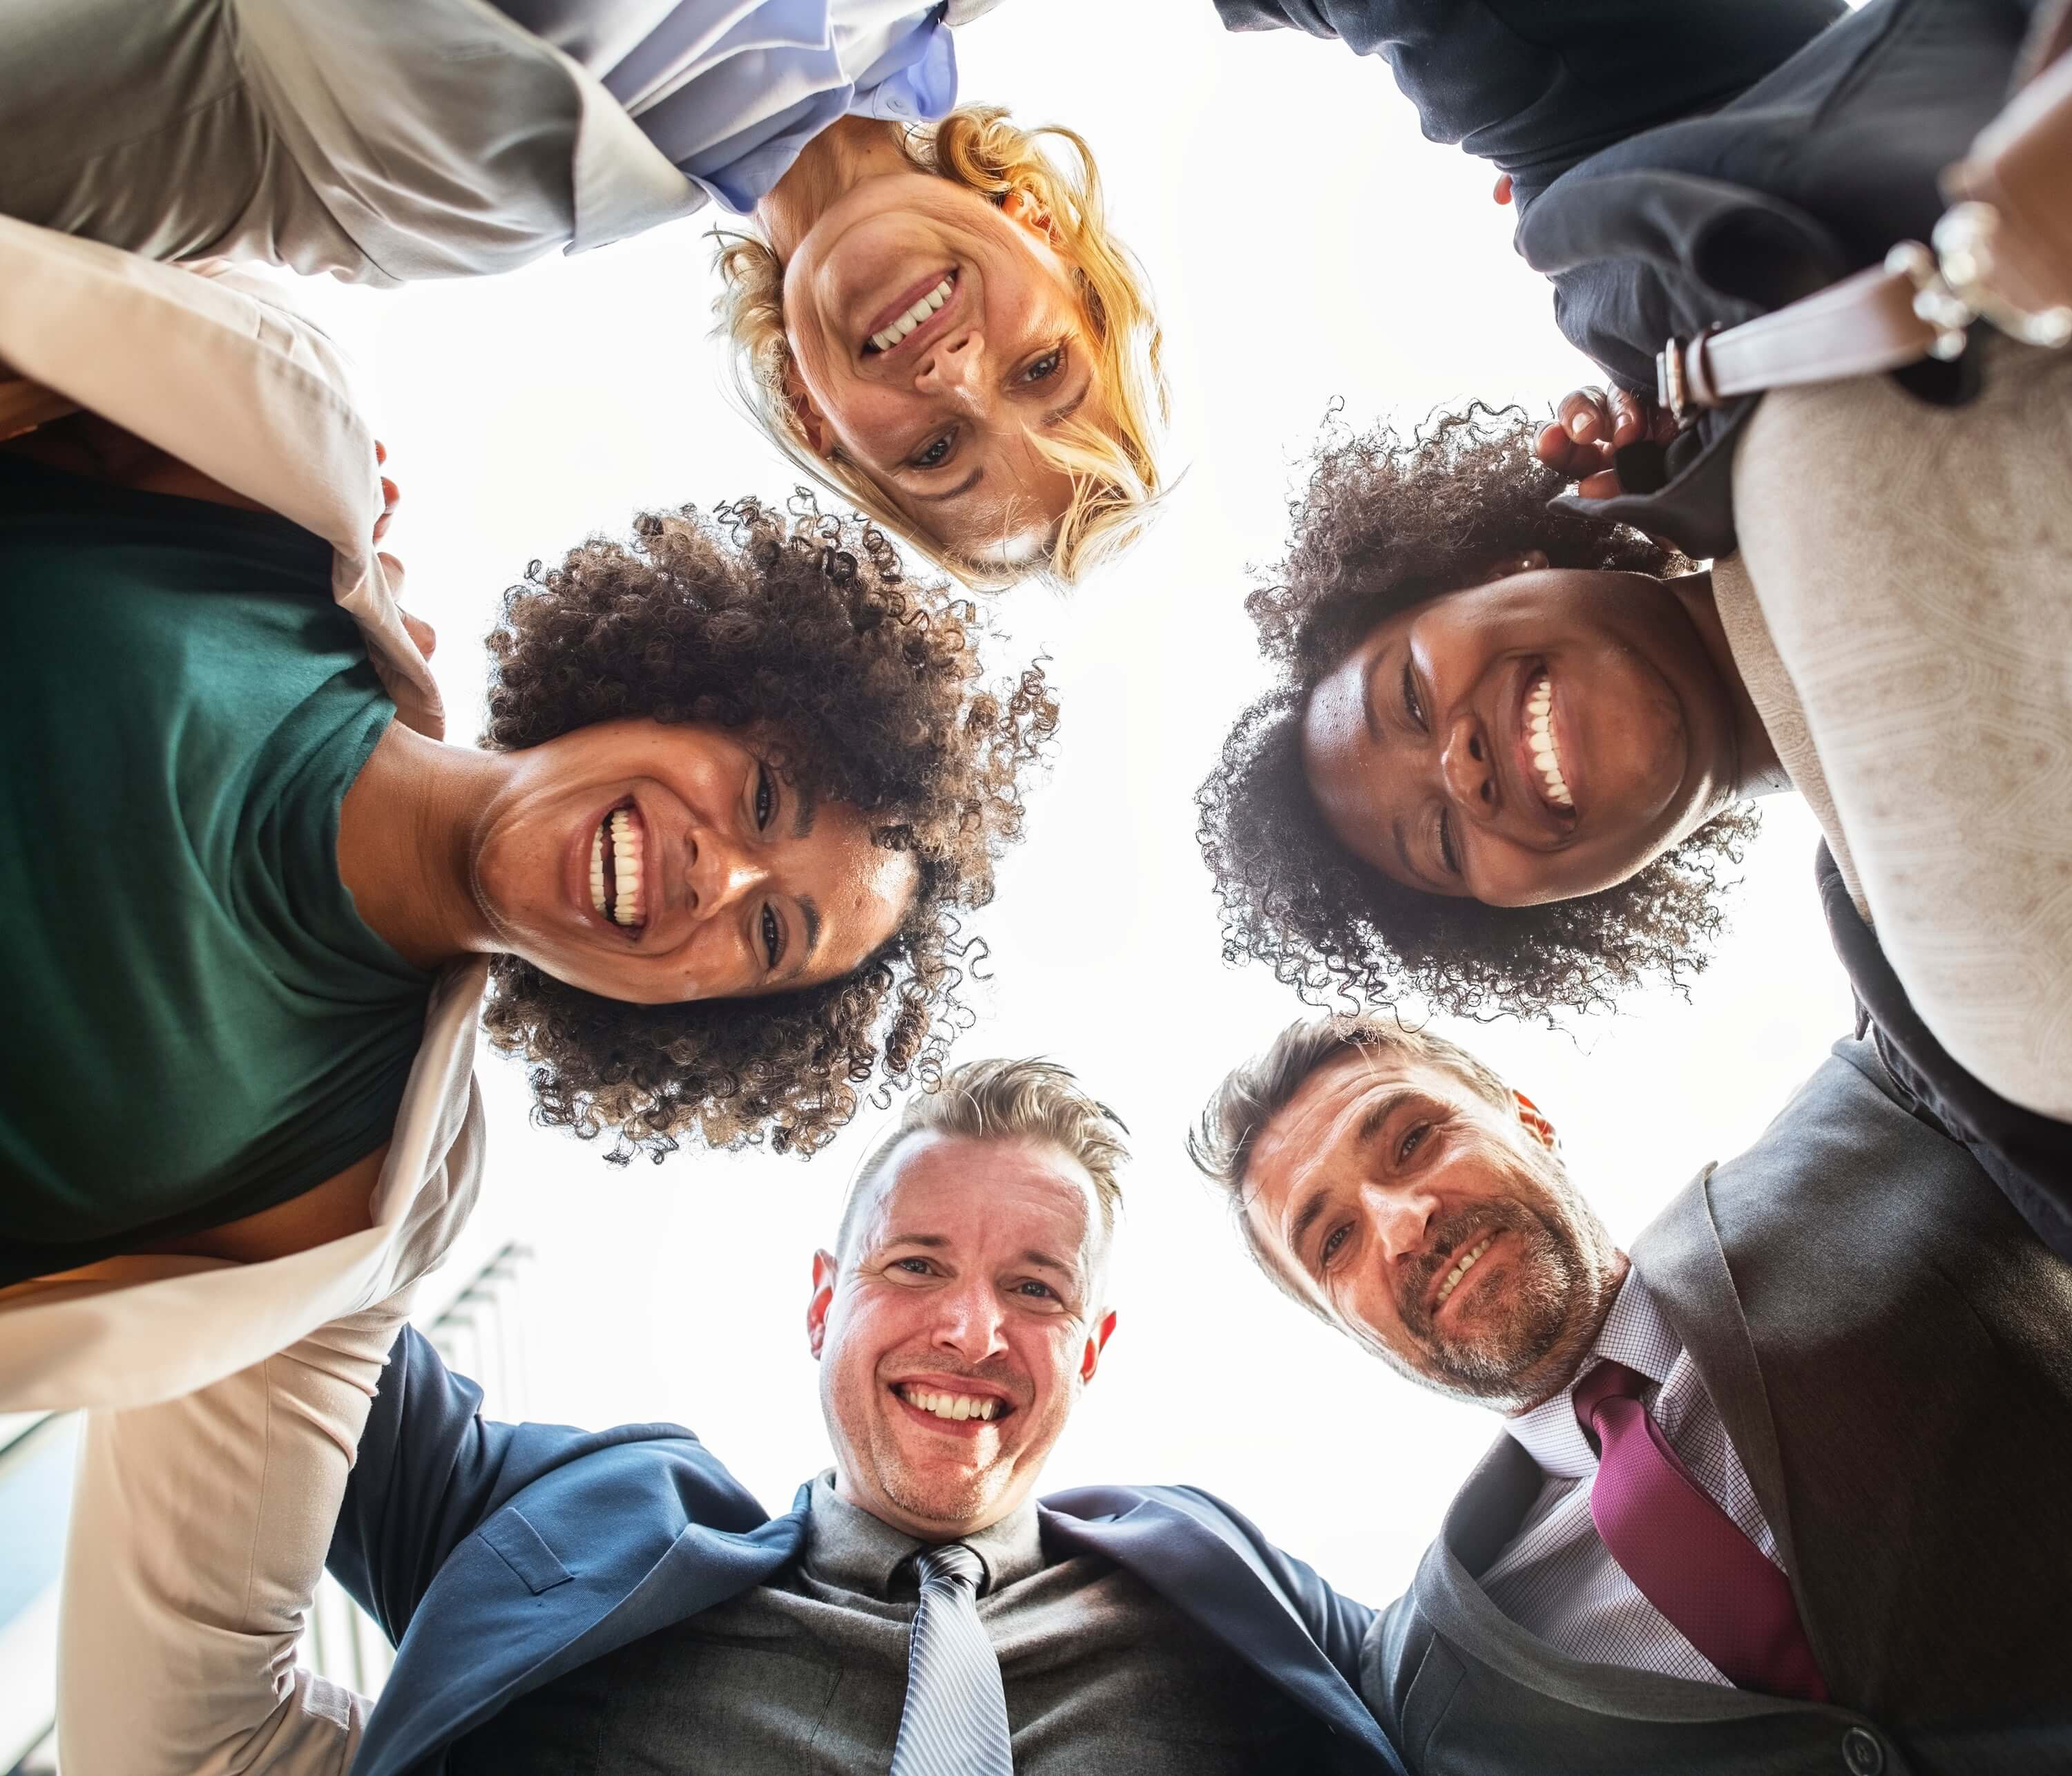 Give the stand-up meeting positive connotation